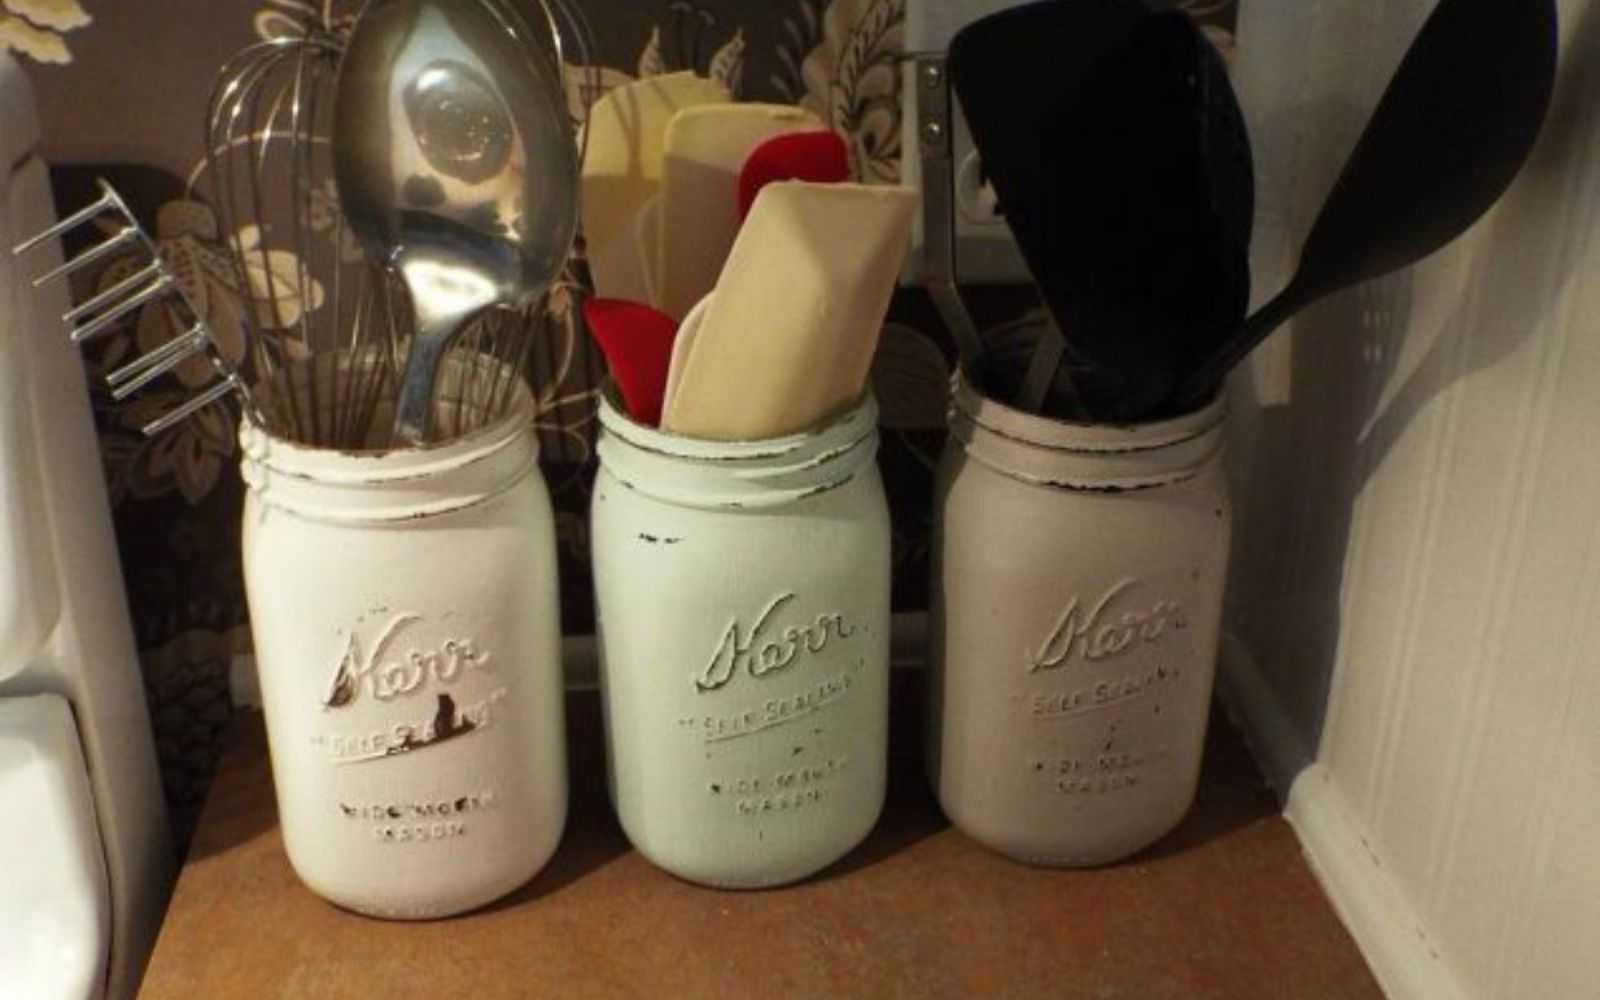 s get rid of kitchen countertop clutter with 13 clever mason jar ideas, countertops, kitchen design, mason jars, organizing, Collect your cutlery and cooking tools